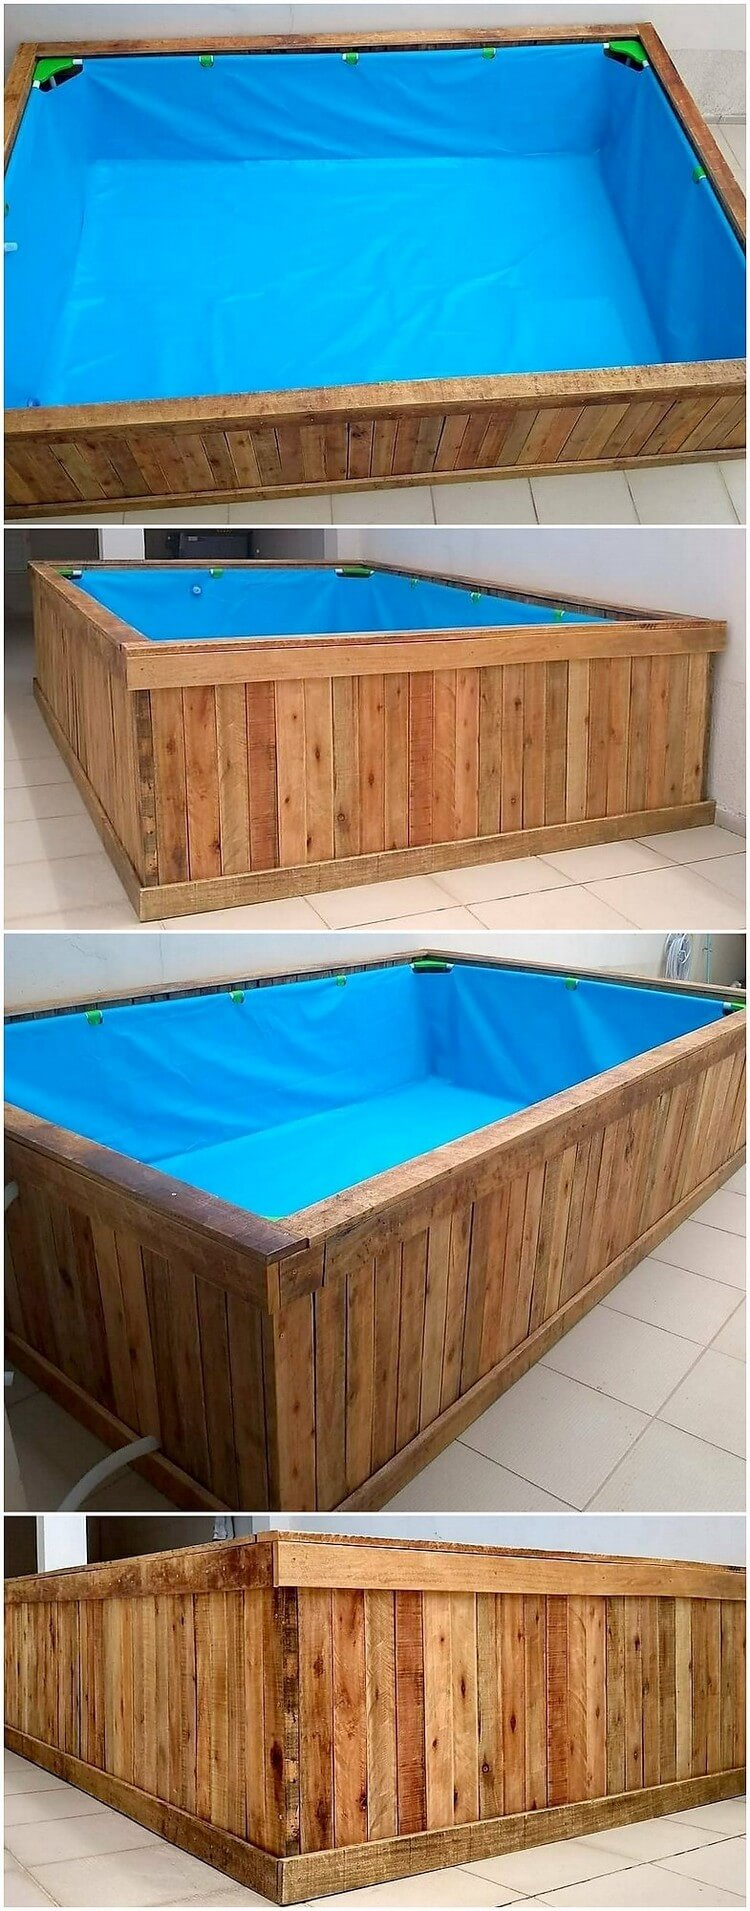 Pallet Swimming Pool for Kids